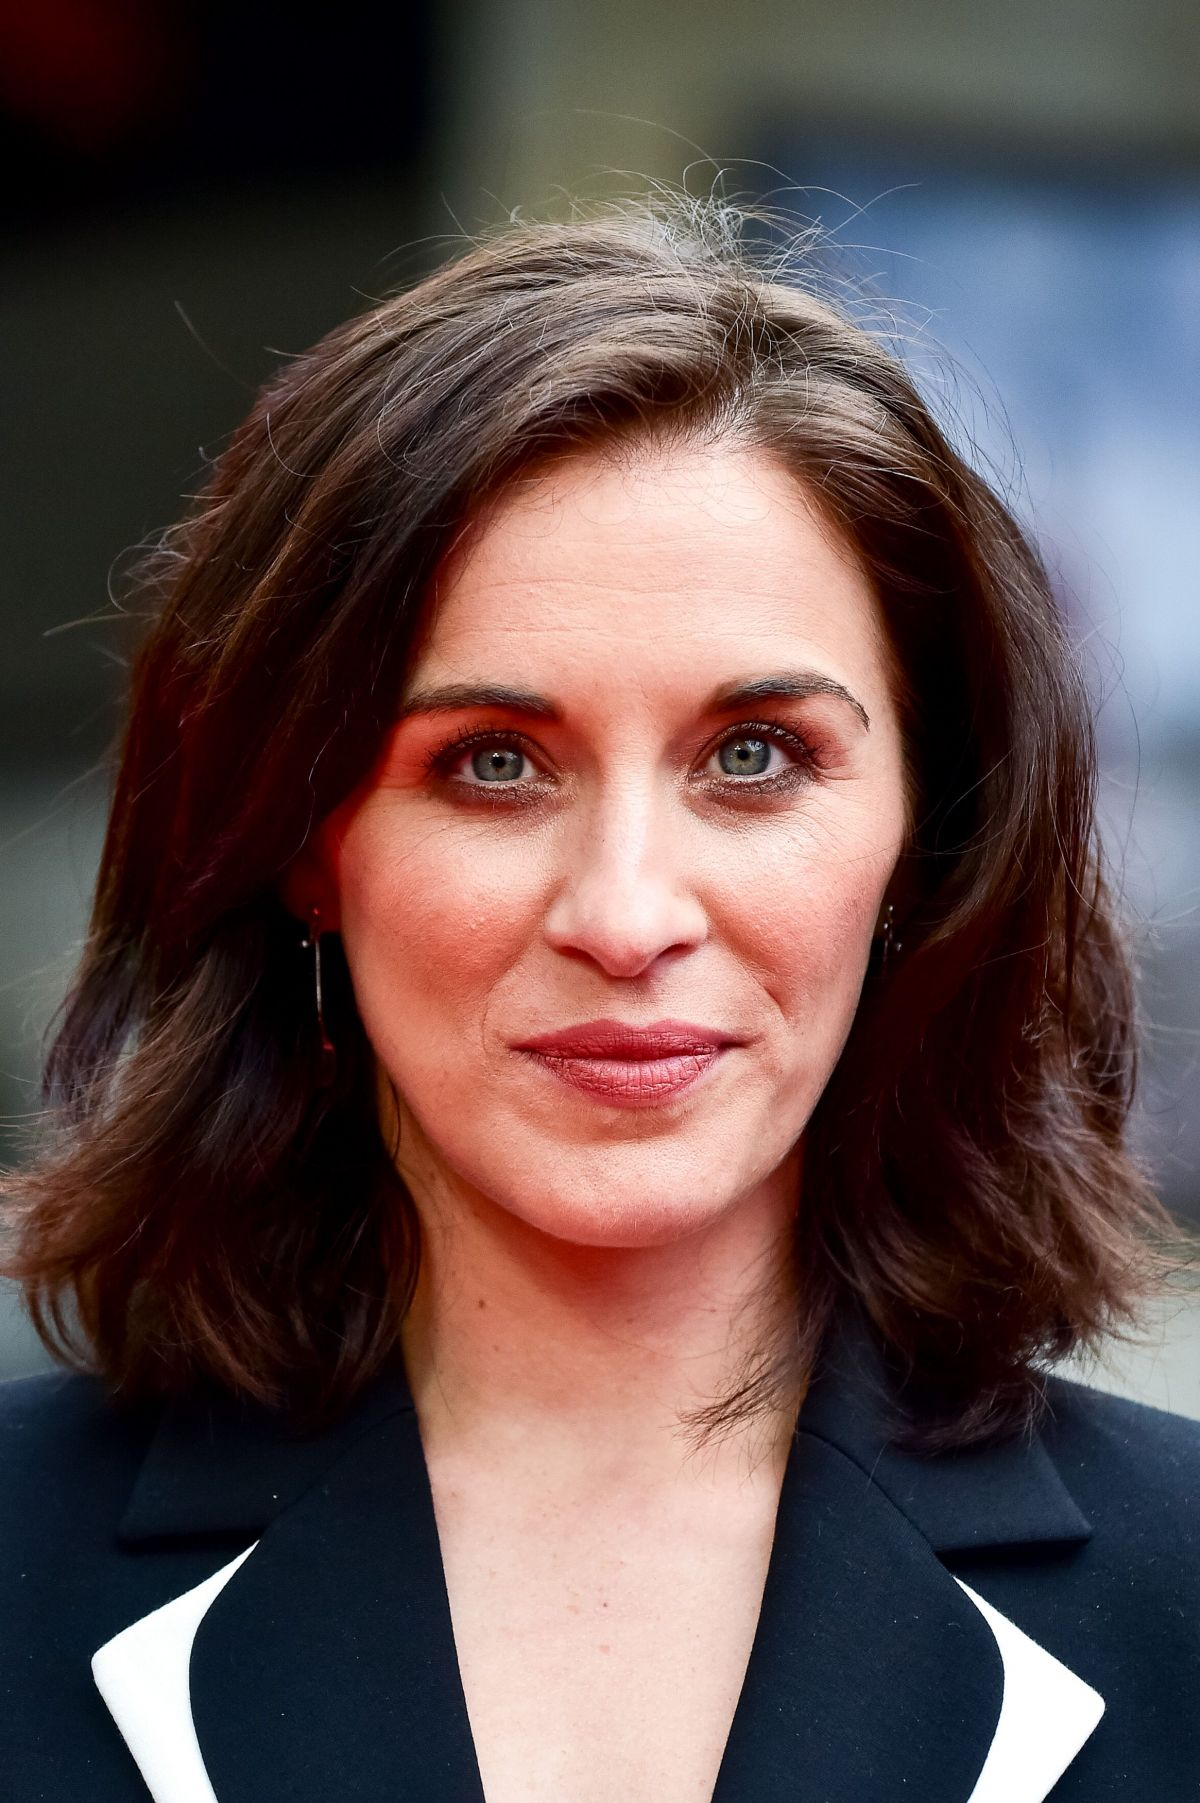 Vicky Mcclure At Jawbone Premiere In London 05 08 2017